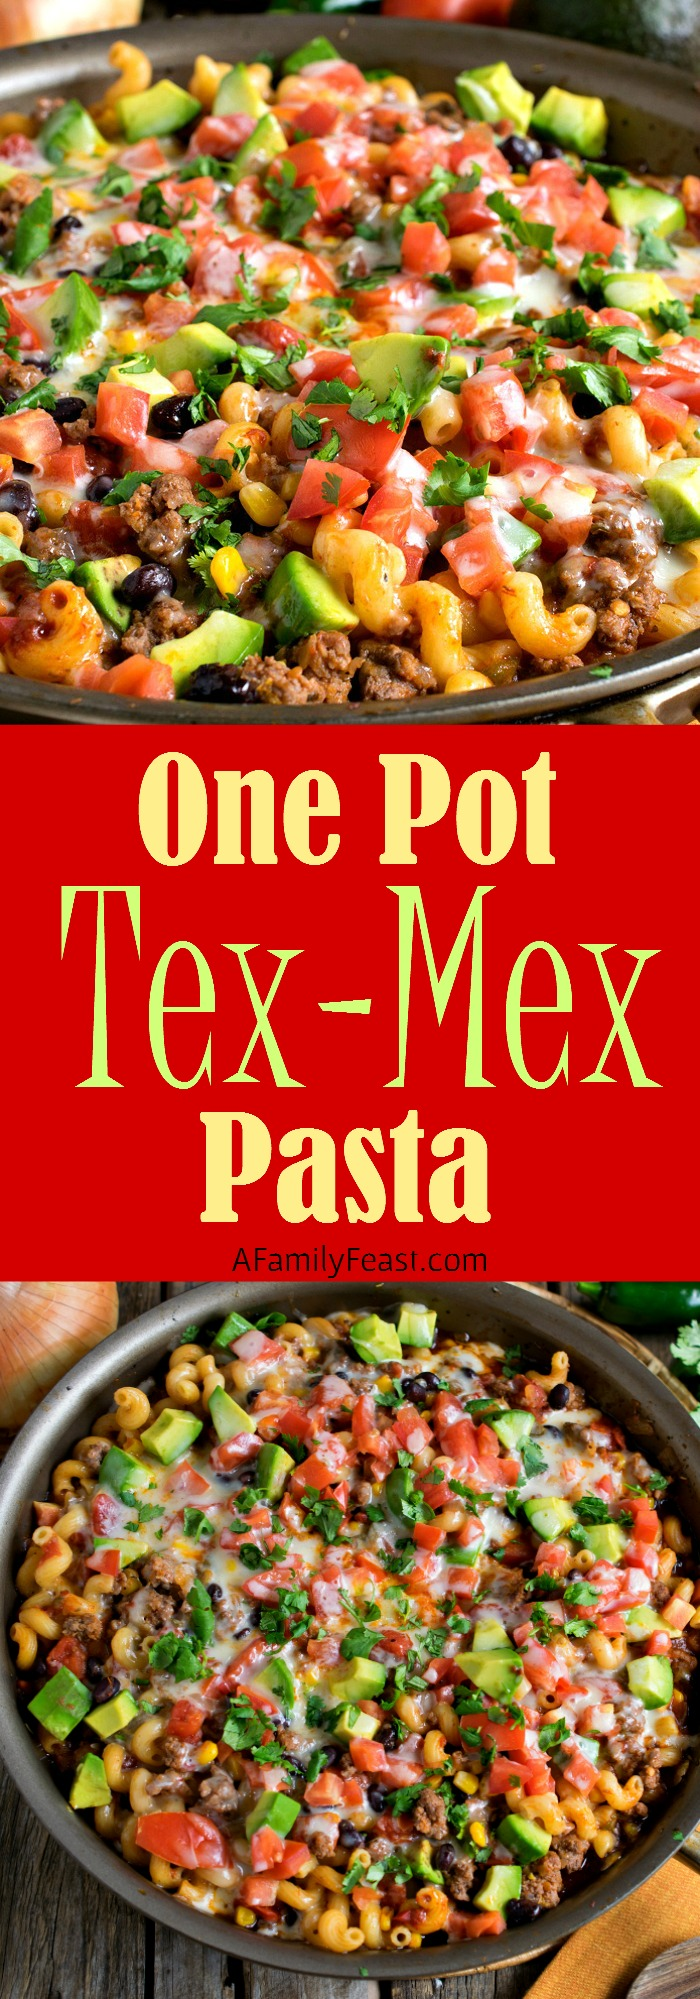 One Pot Tex-Mex Pasta - Dinner is delicious and cleanup is easy with ...